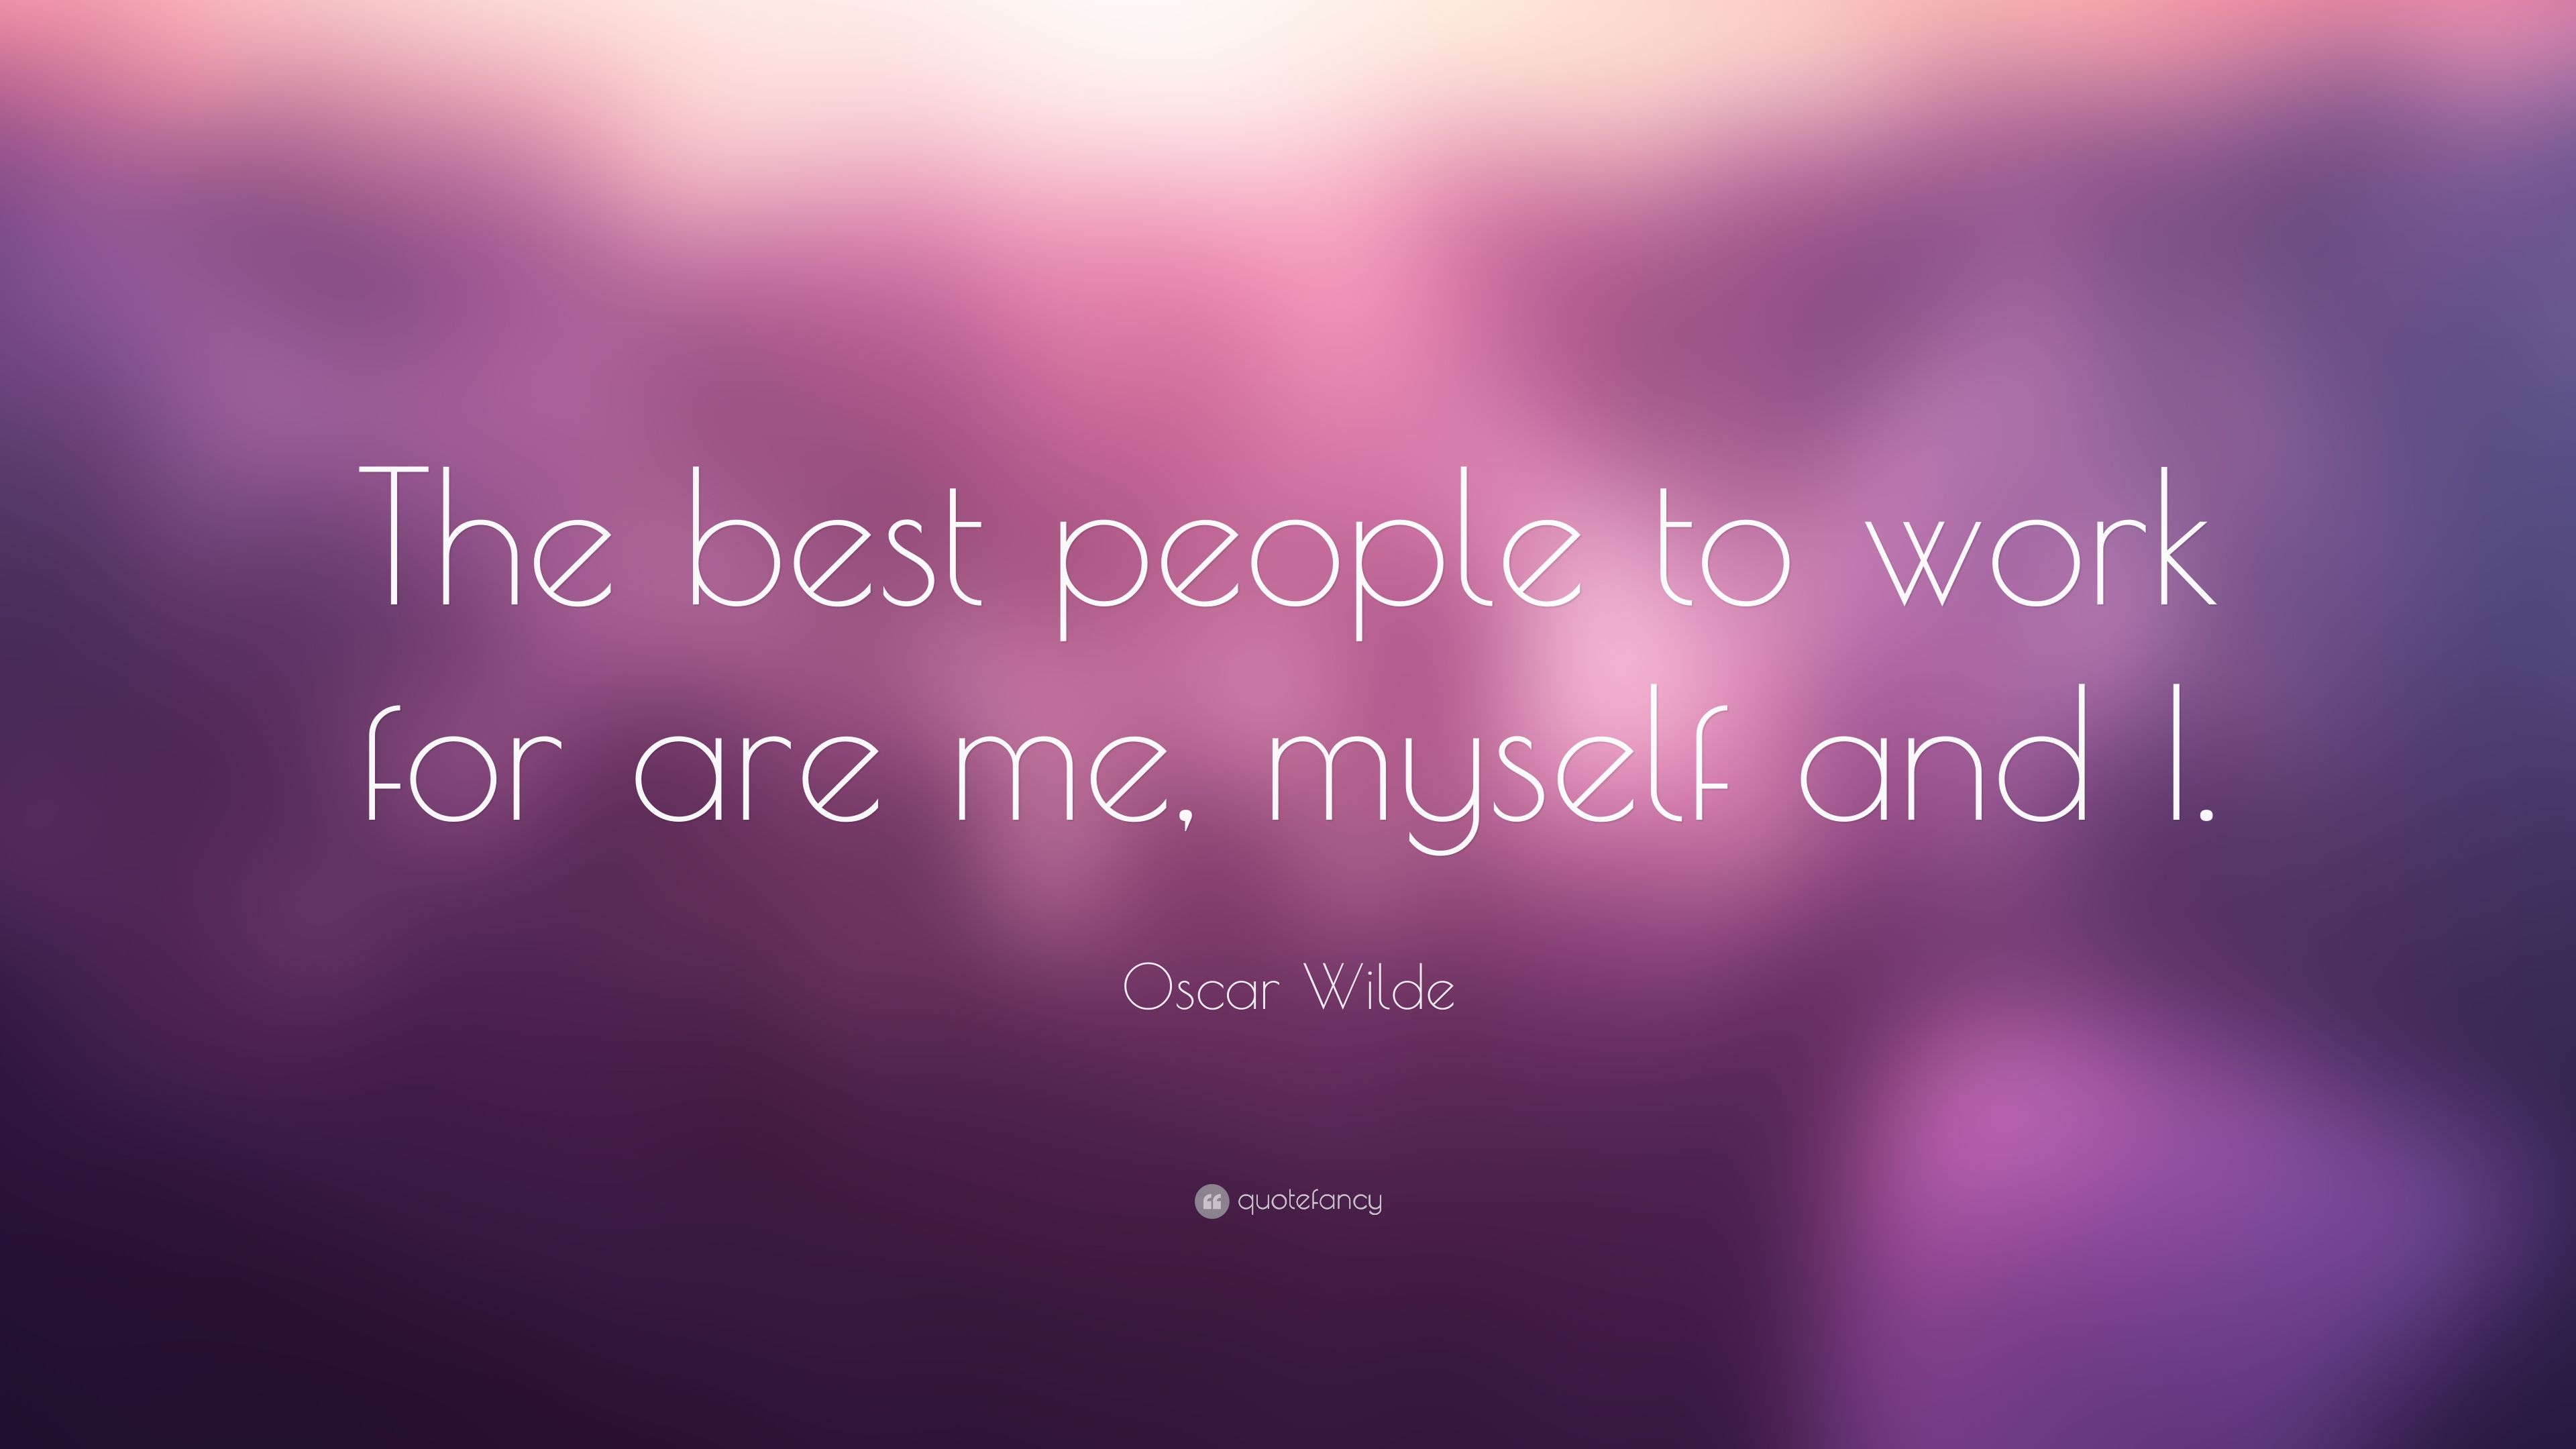 Oscar Wilde Quote The Best People To Work For Are Me Myself And